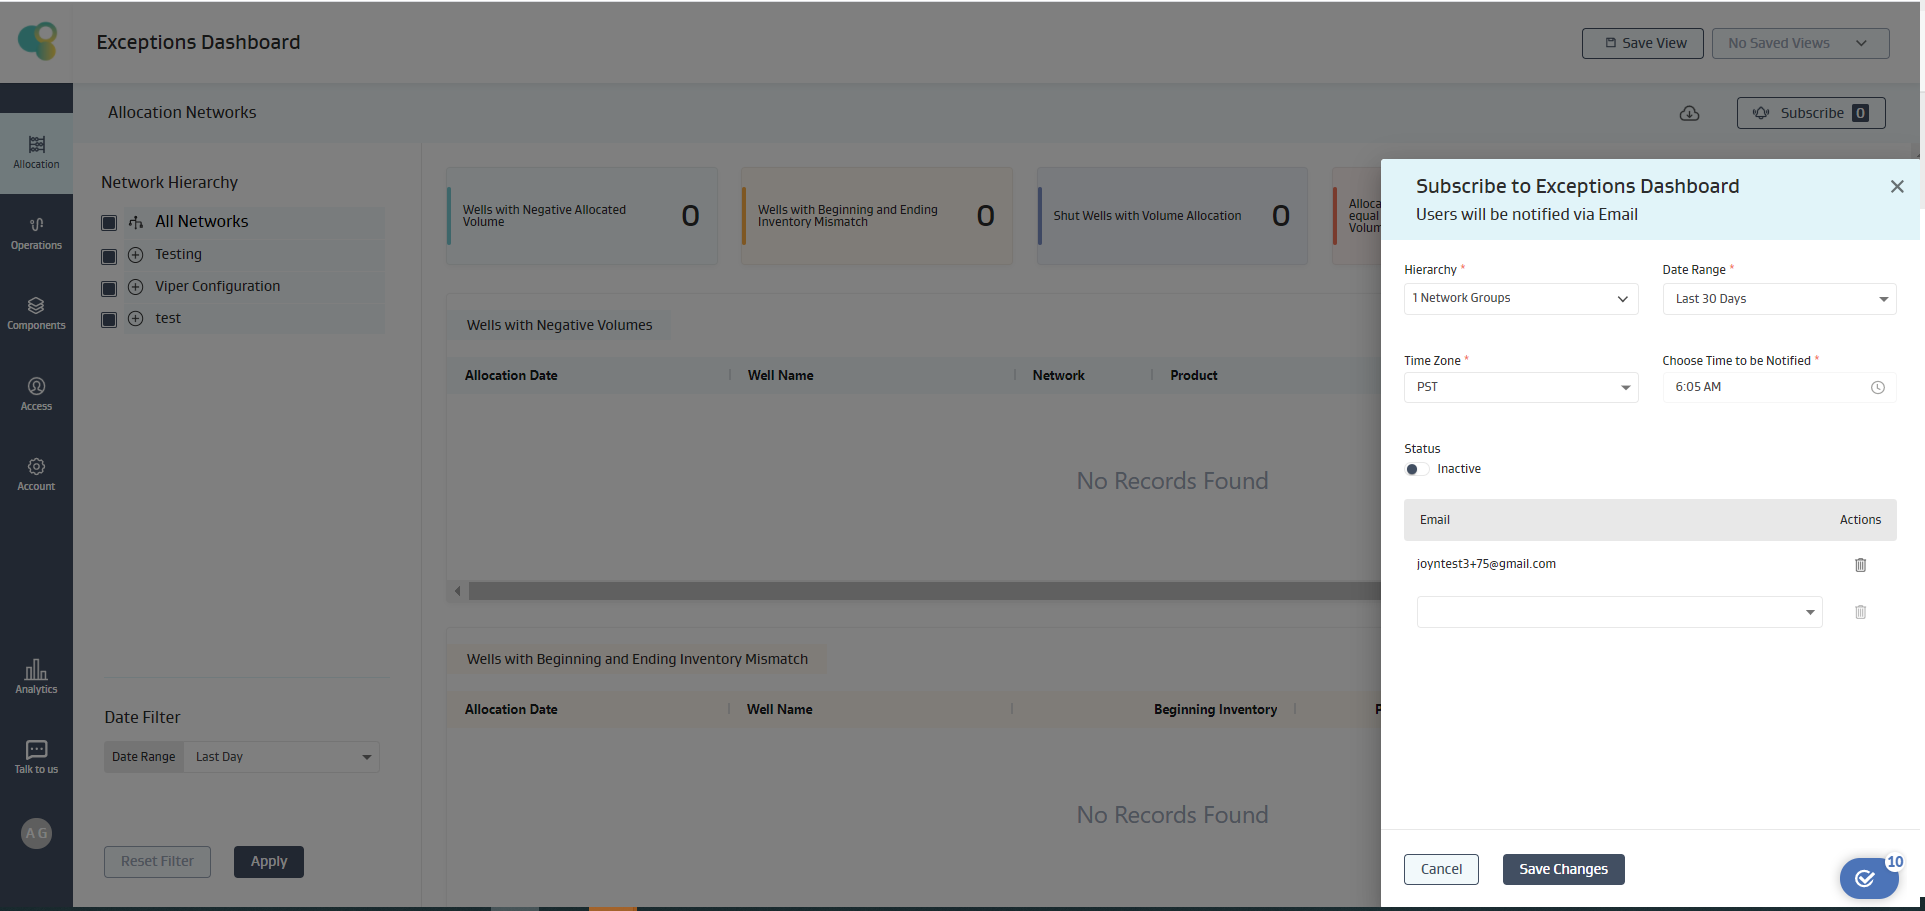 De-activate Subscriptions to Exceptions Dashboard